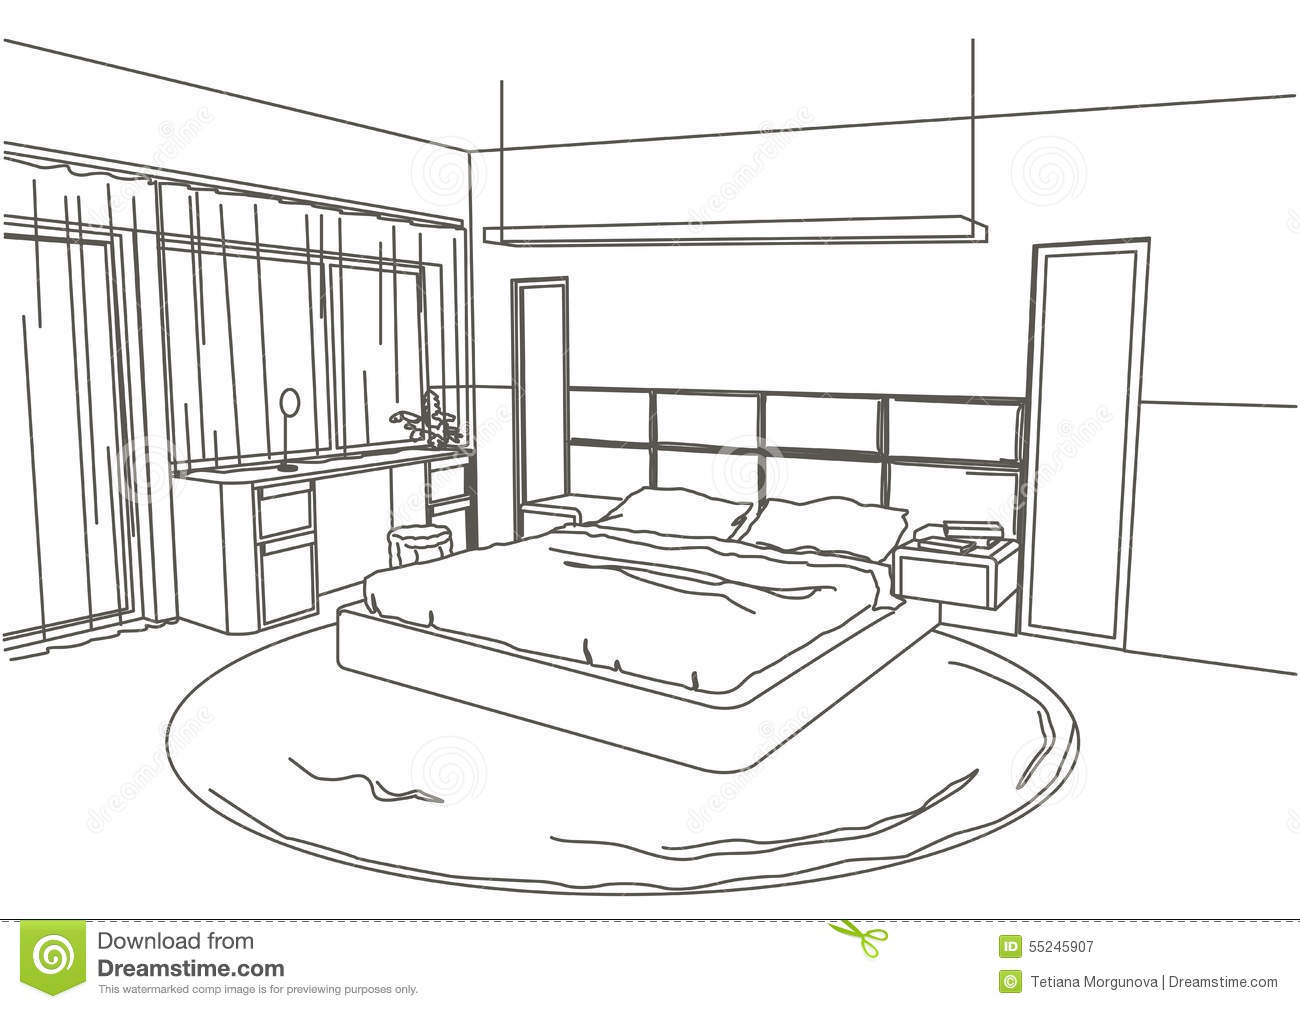 Linear architectural sketch interior modern bedroom stock for Bedroom designs sketch